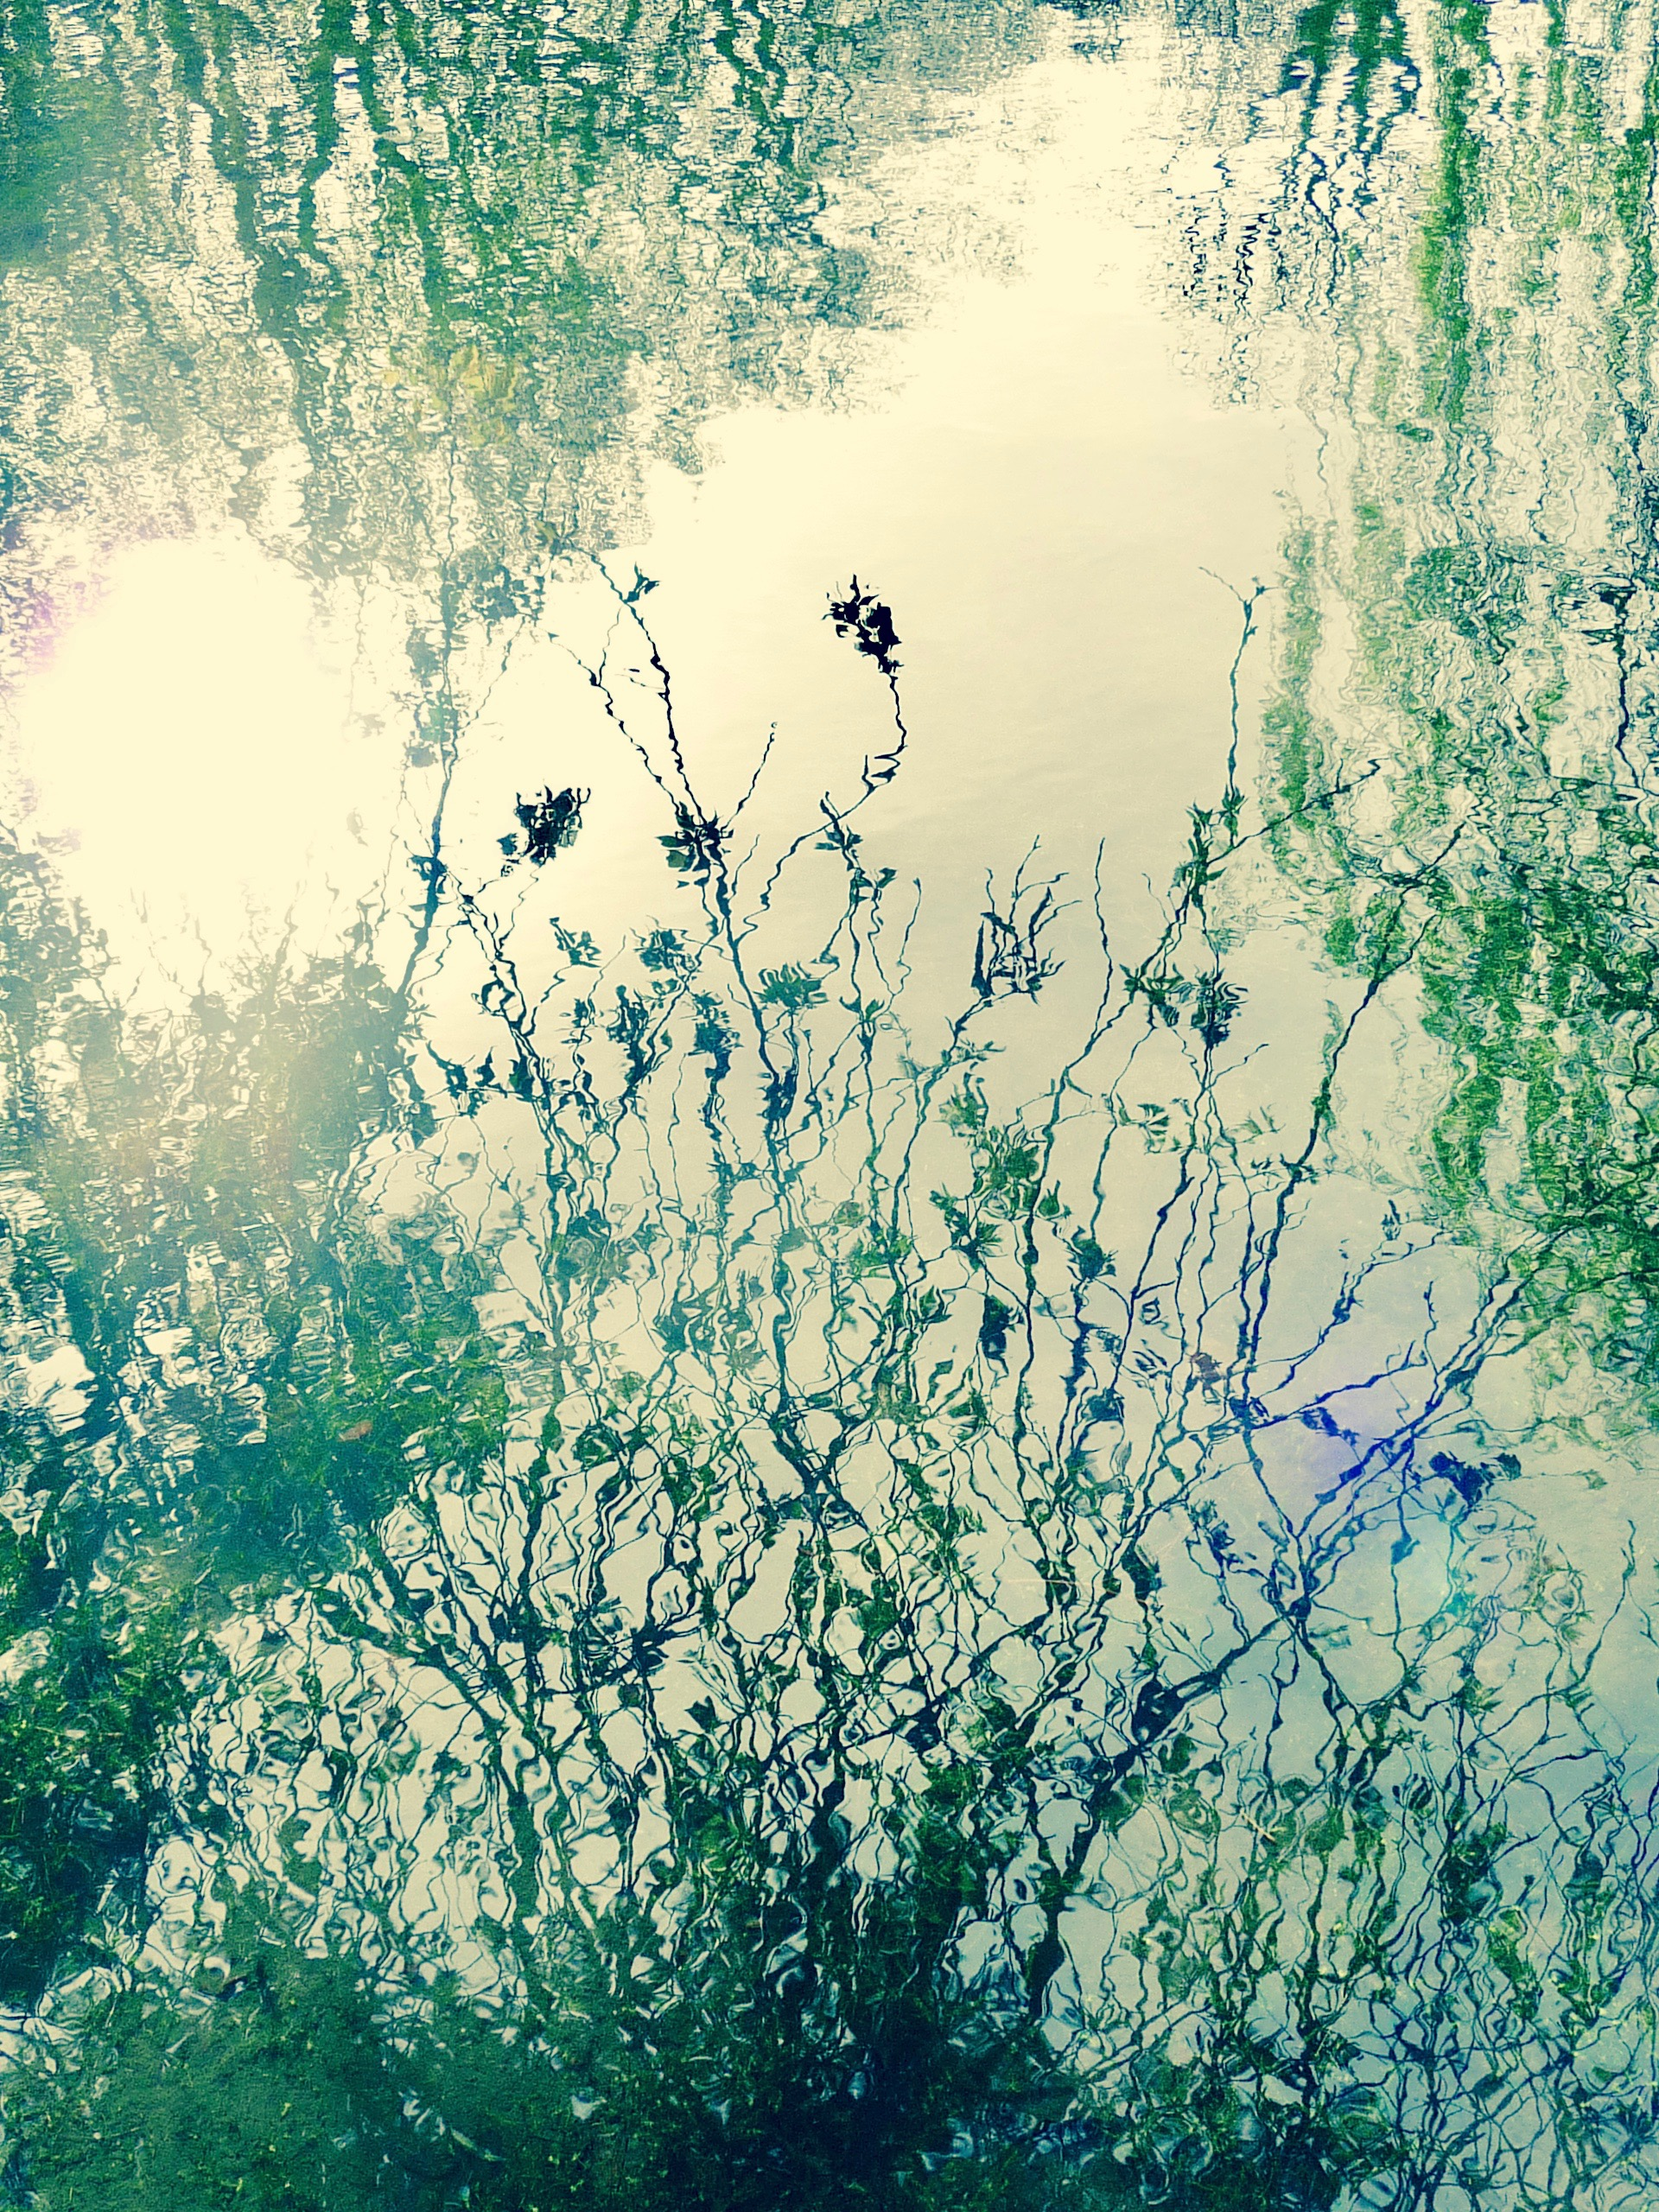 Wild Garden series, reflections